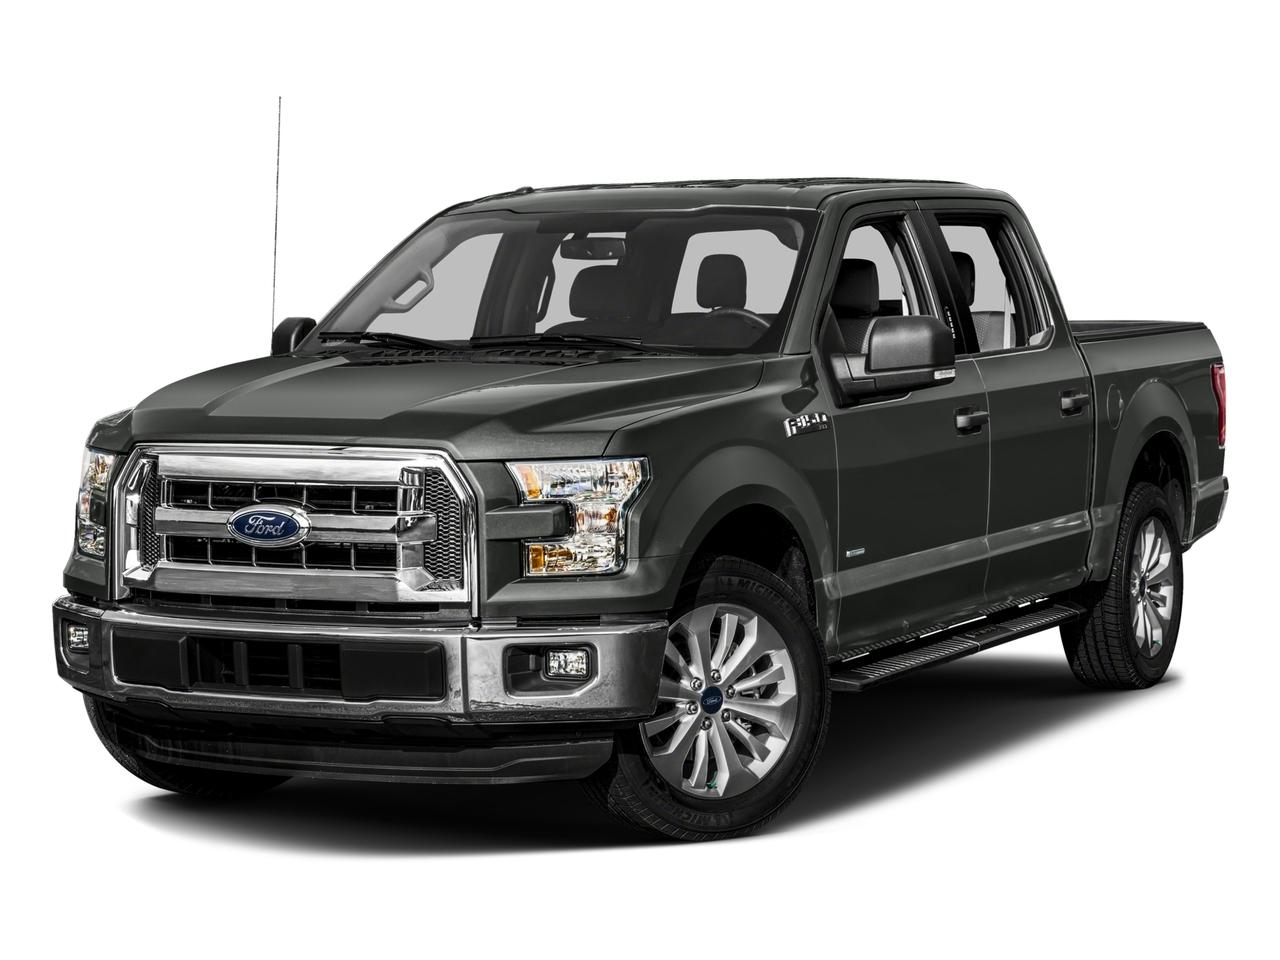 2016 Ford F-150 Vehicle Photo in Grapevine, TX 76051